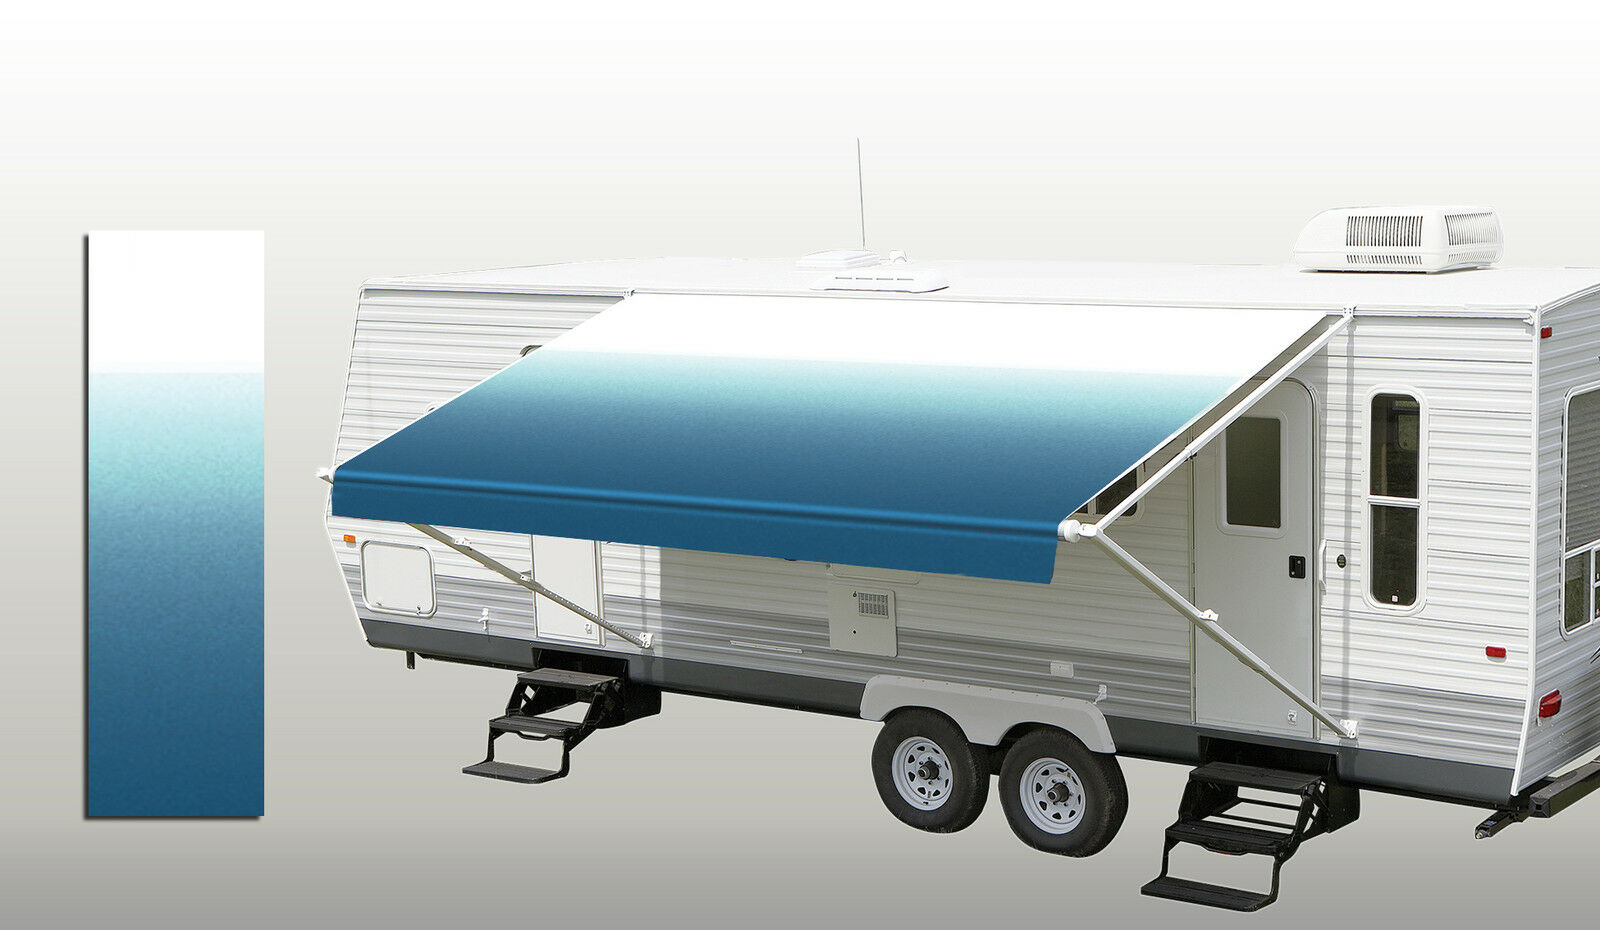 Brilliant I Need To Replace The Awning Fabric On My 18foot Awning All Of The Aftermarket Replacements I Find Are Two Pieces, A Main Awning And A Valance I Am Having Trouble Visualizing How The Two Are Joined Together In The Single Slot On The